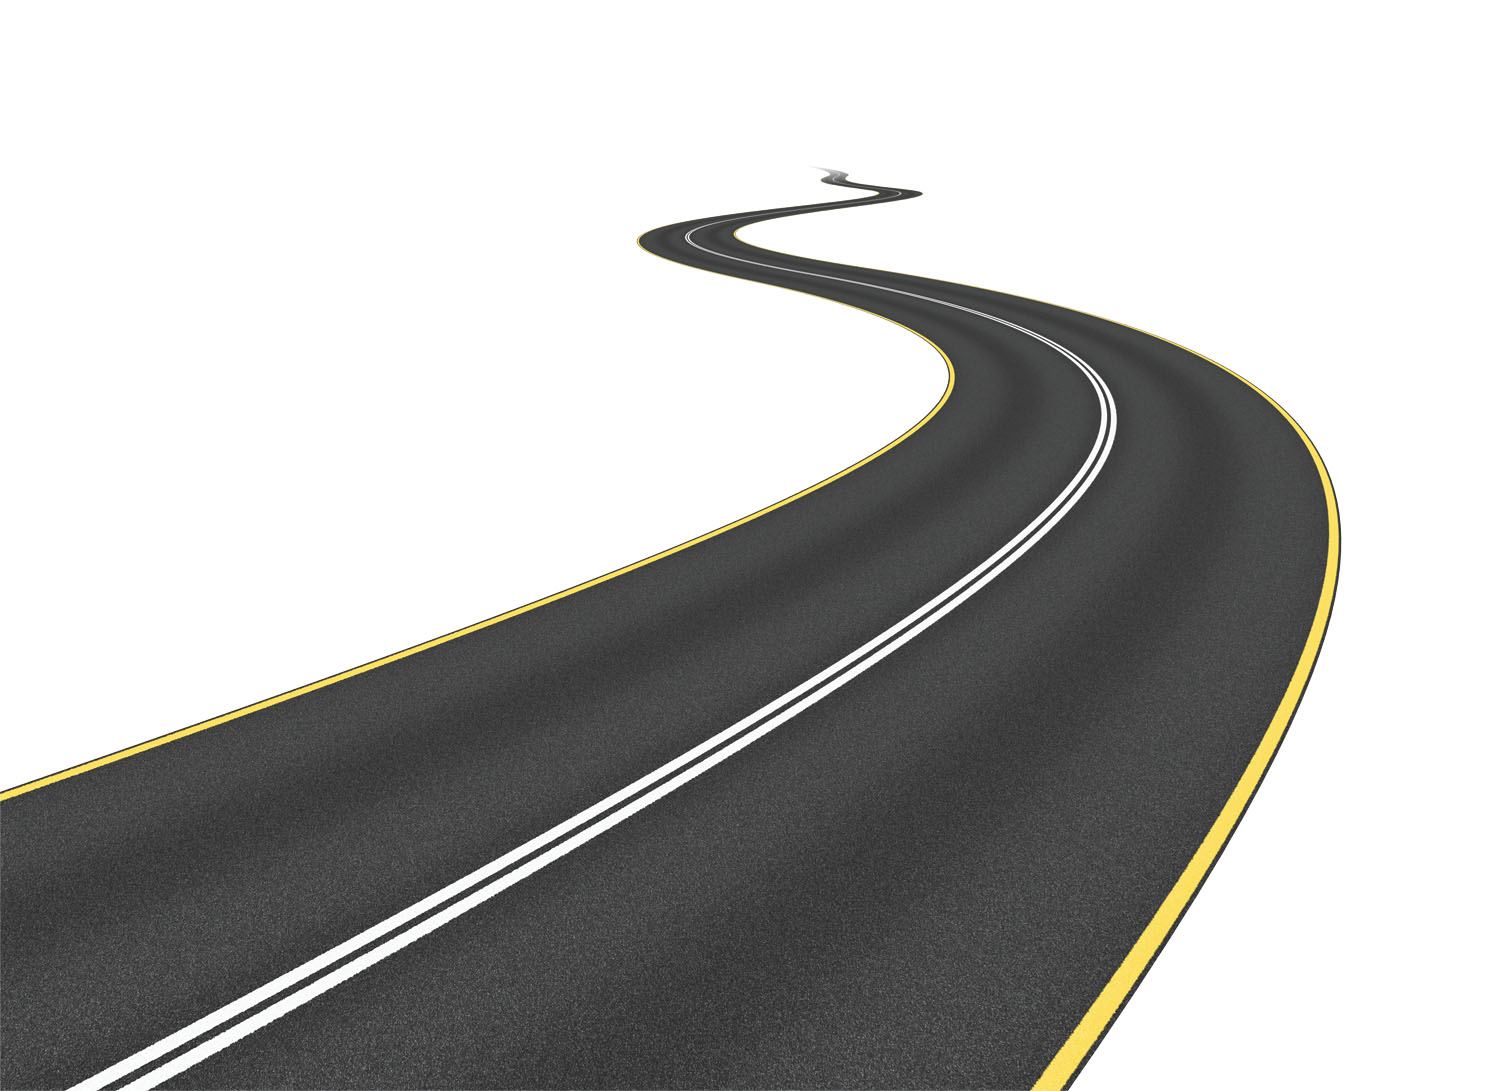 Road clipart. Long curvy